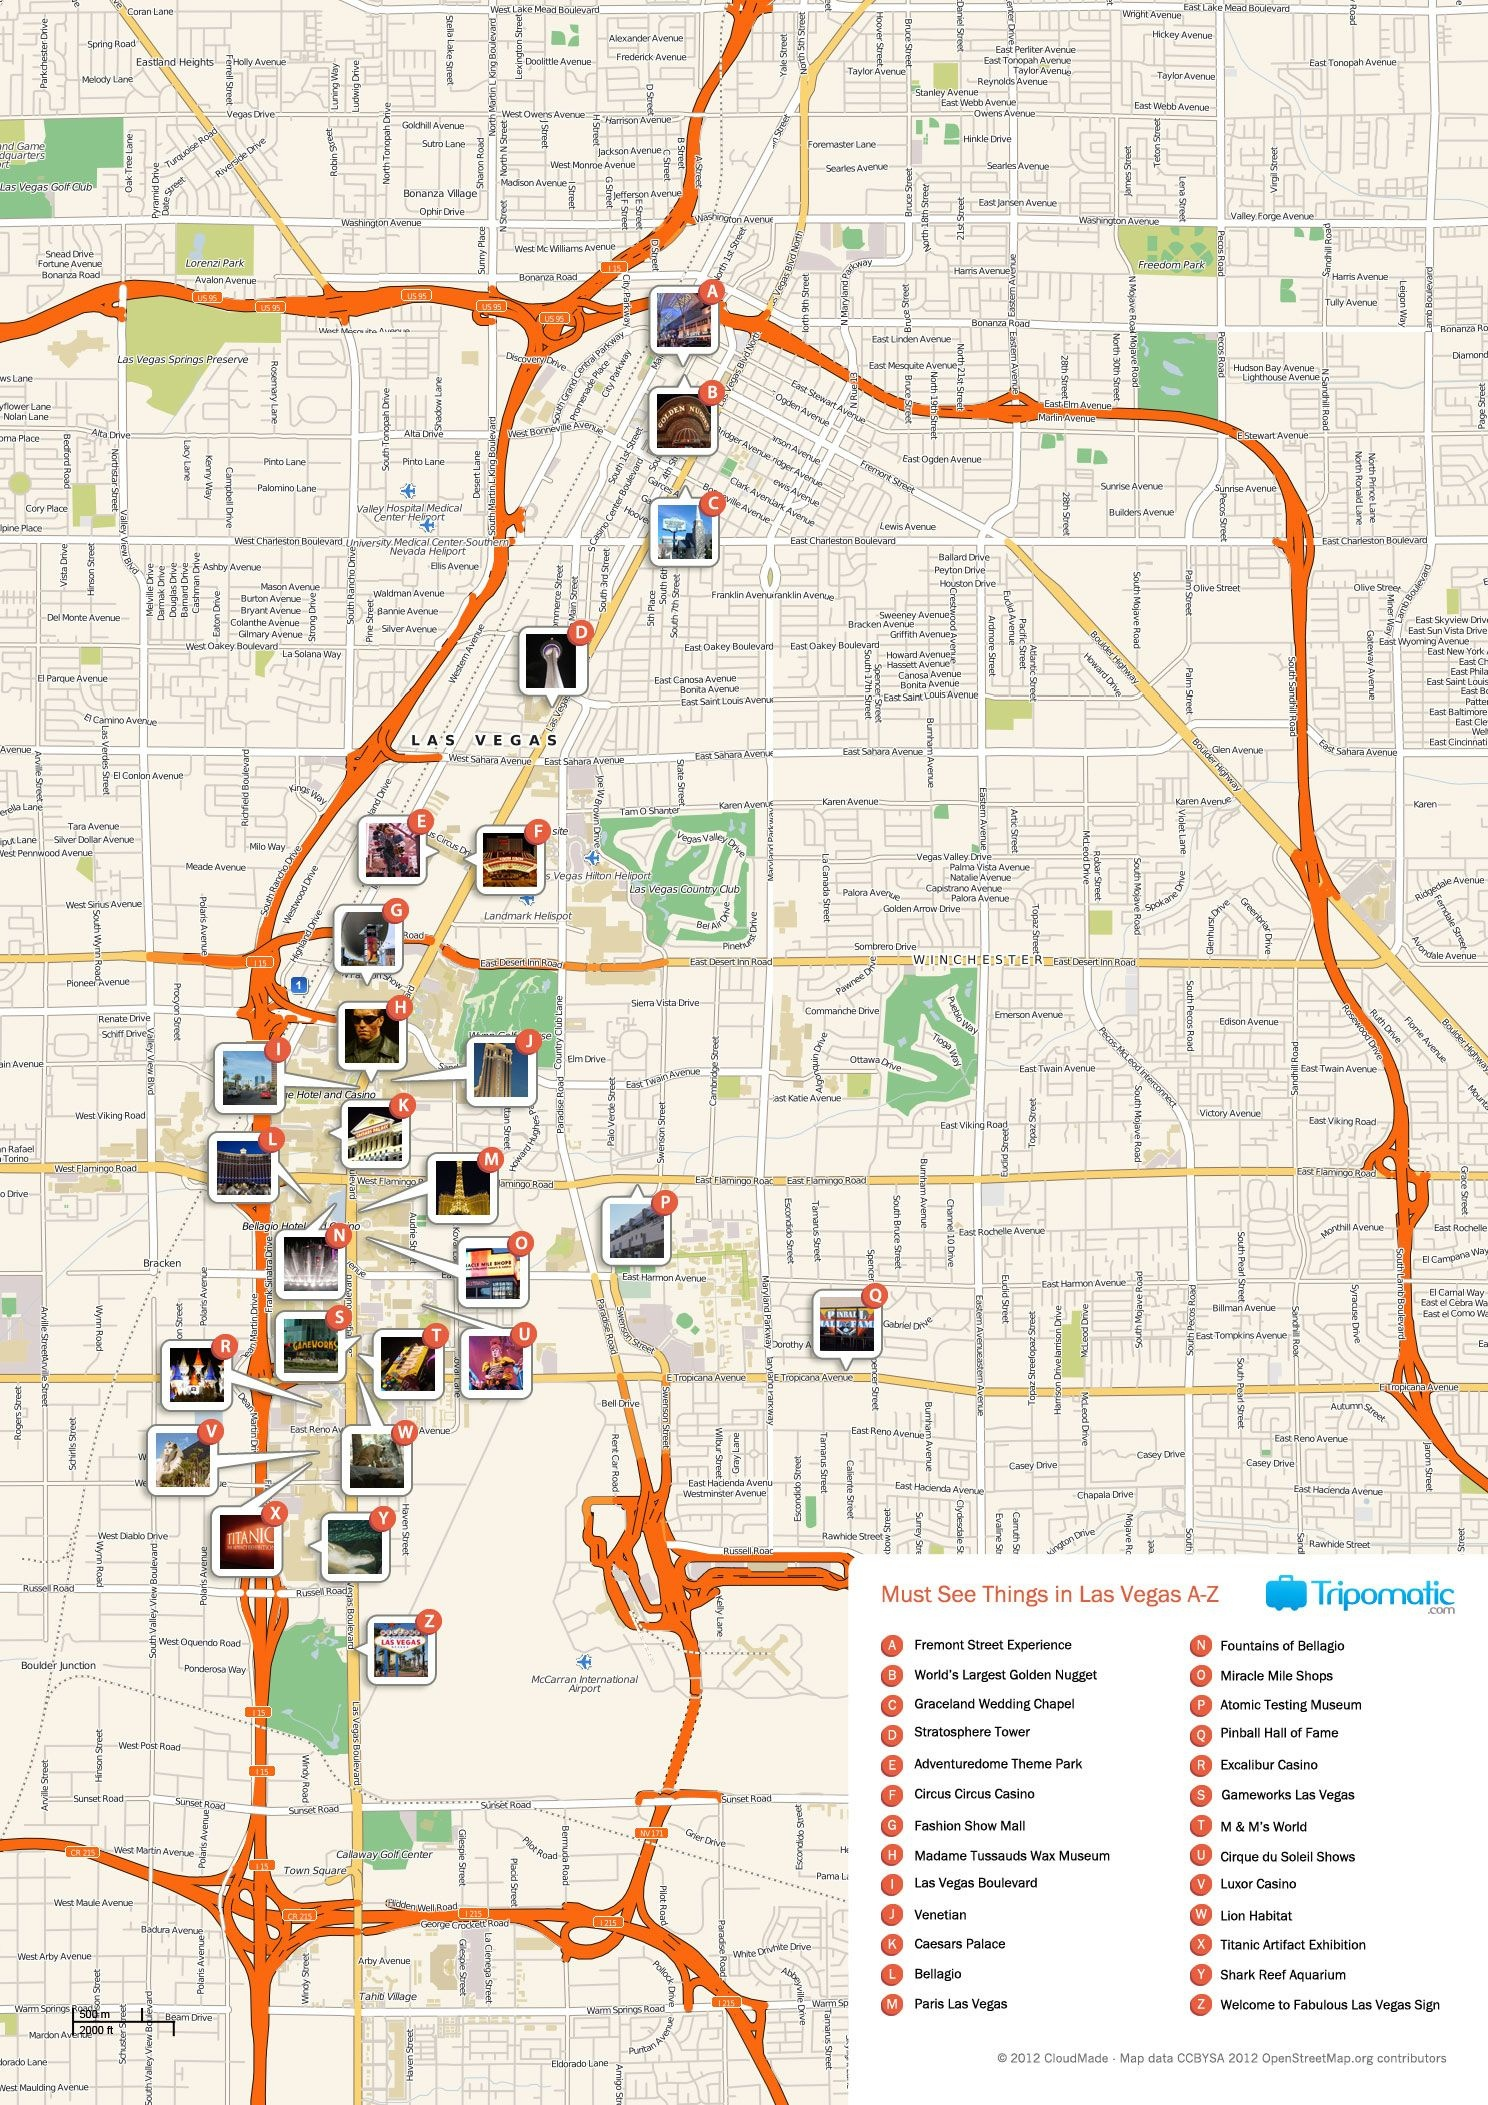 Free Printable Map Of Las Vegas Attractions.   Free Tourist Maps - Free Printable Las Vegas Coupons 2014